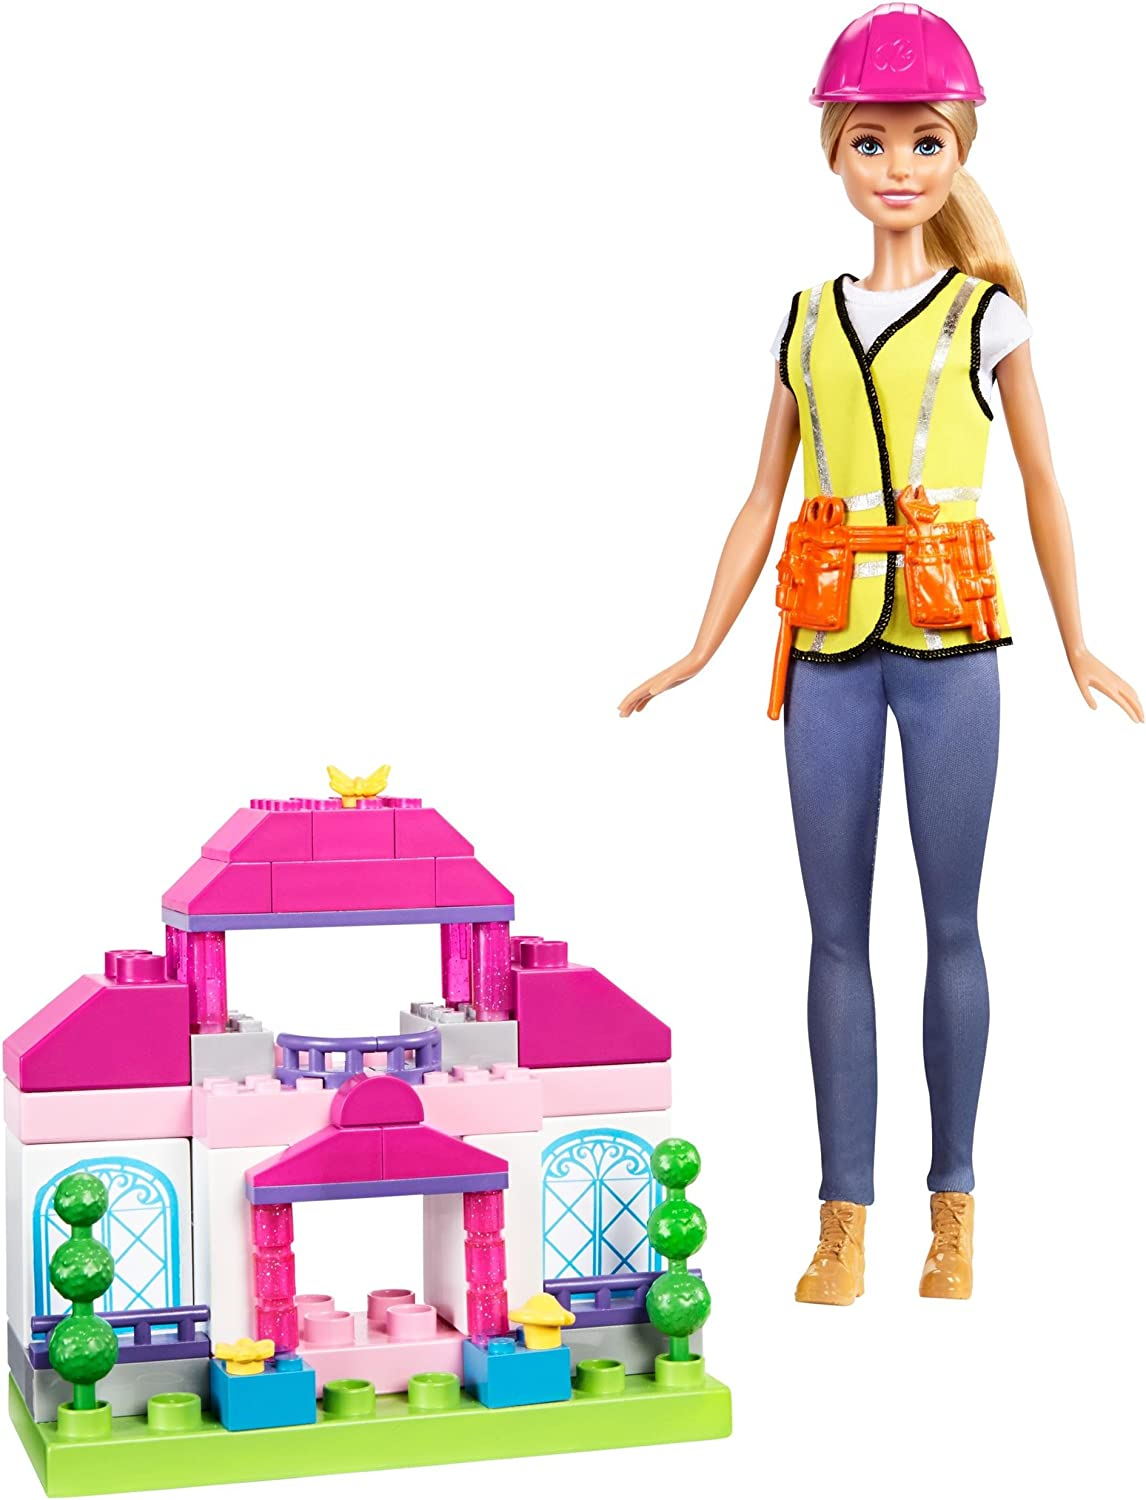 2016 New Tree House set Barbie Builder Doll Play set by Mattel